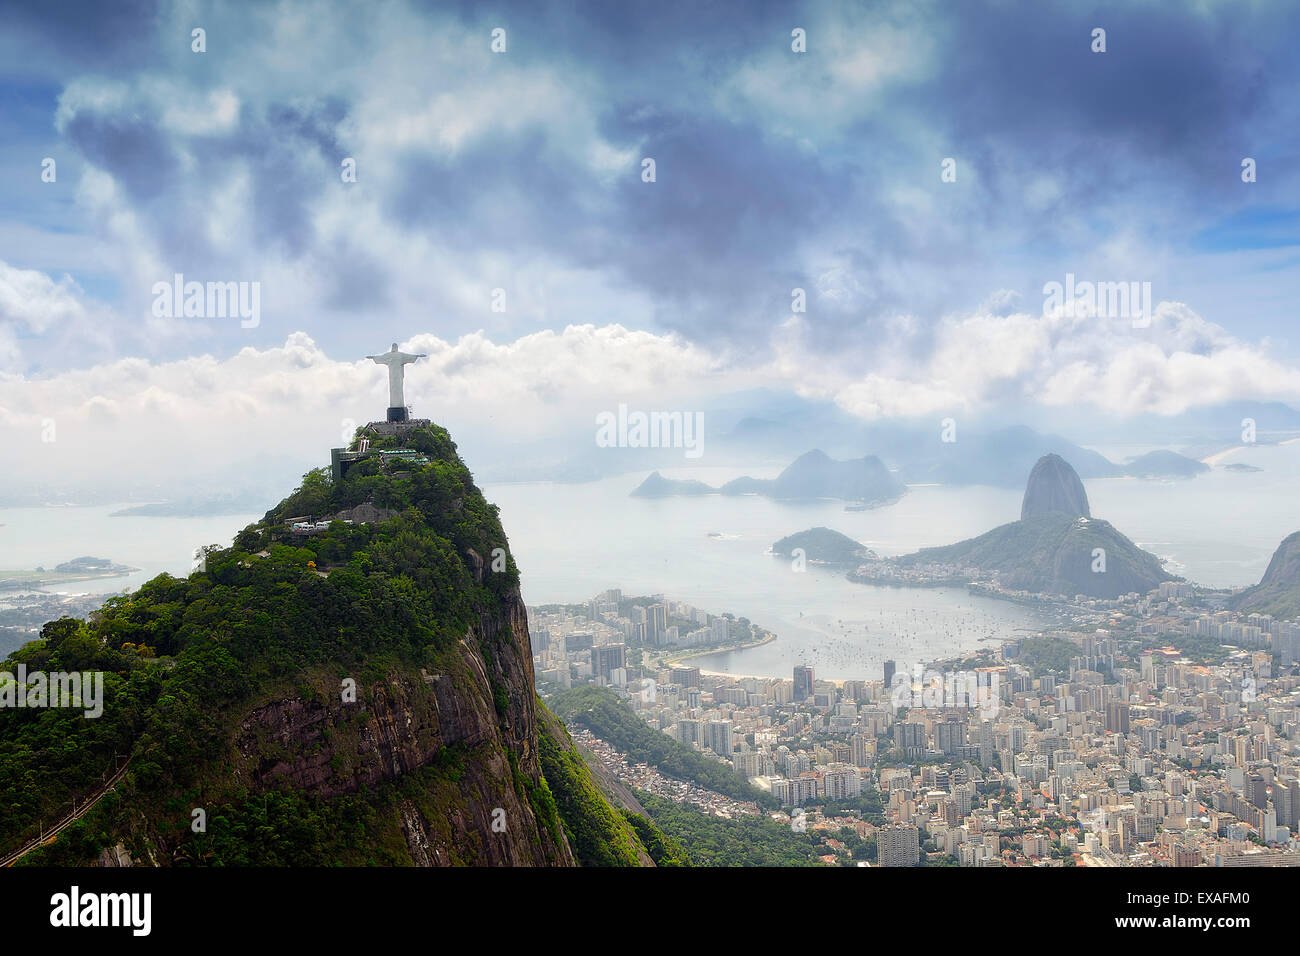 Rio de Janeiro landscape showing Corcovado, the Christ and the Sugar Loaf, UNESCO Site, Rio de Janeiro, Brazil, South America Stock Photo